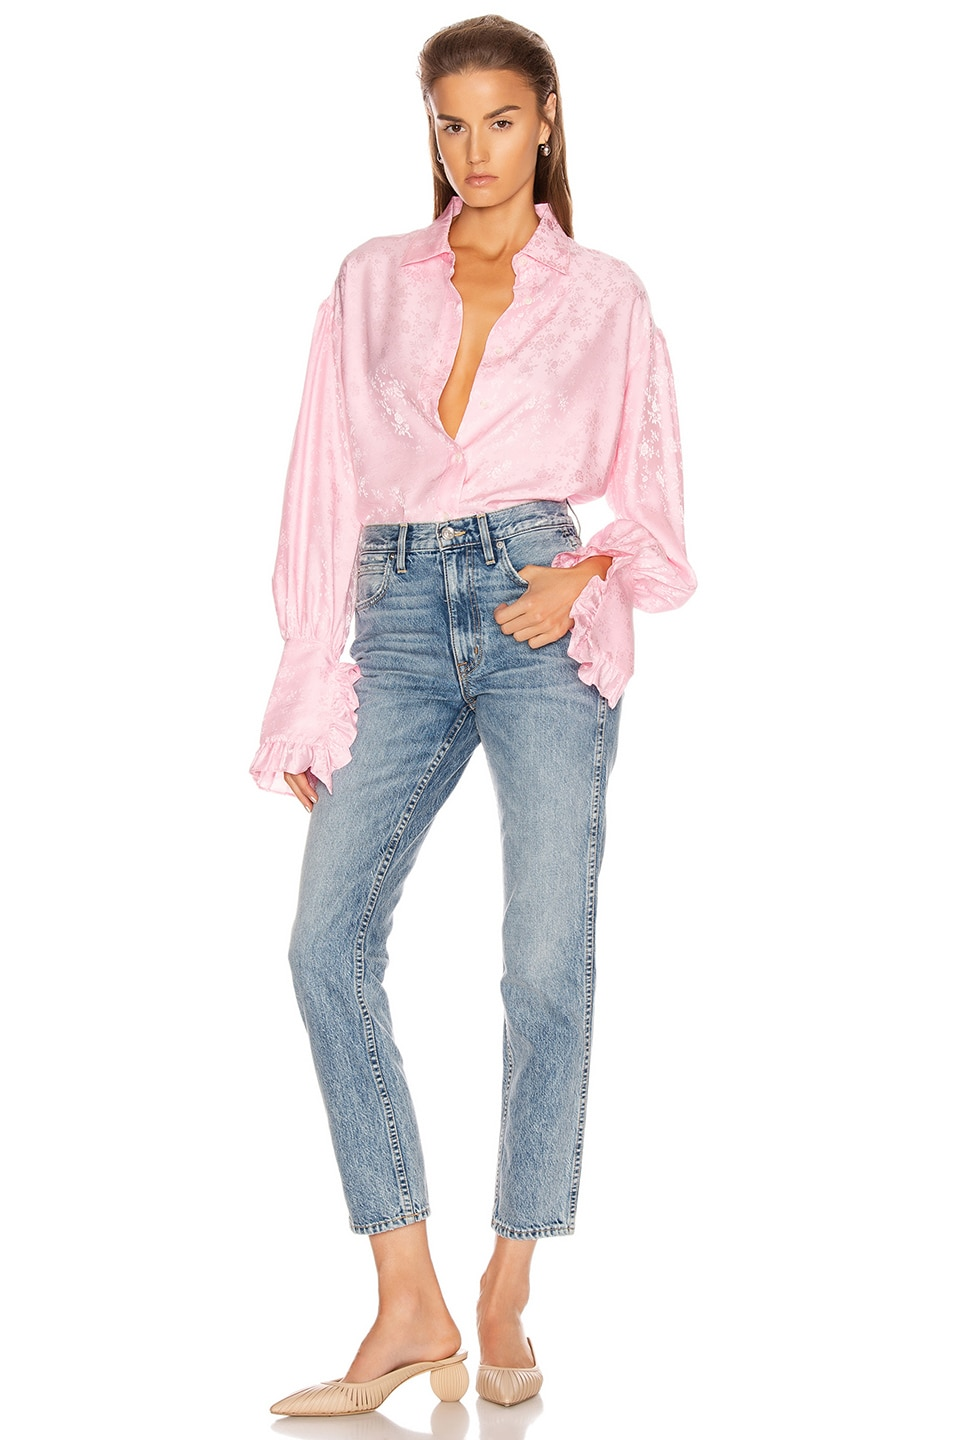 Image 4 of Les Reveries Ruffle Cuff Top in Rose Pink